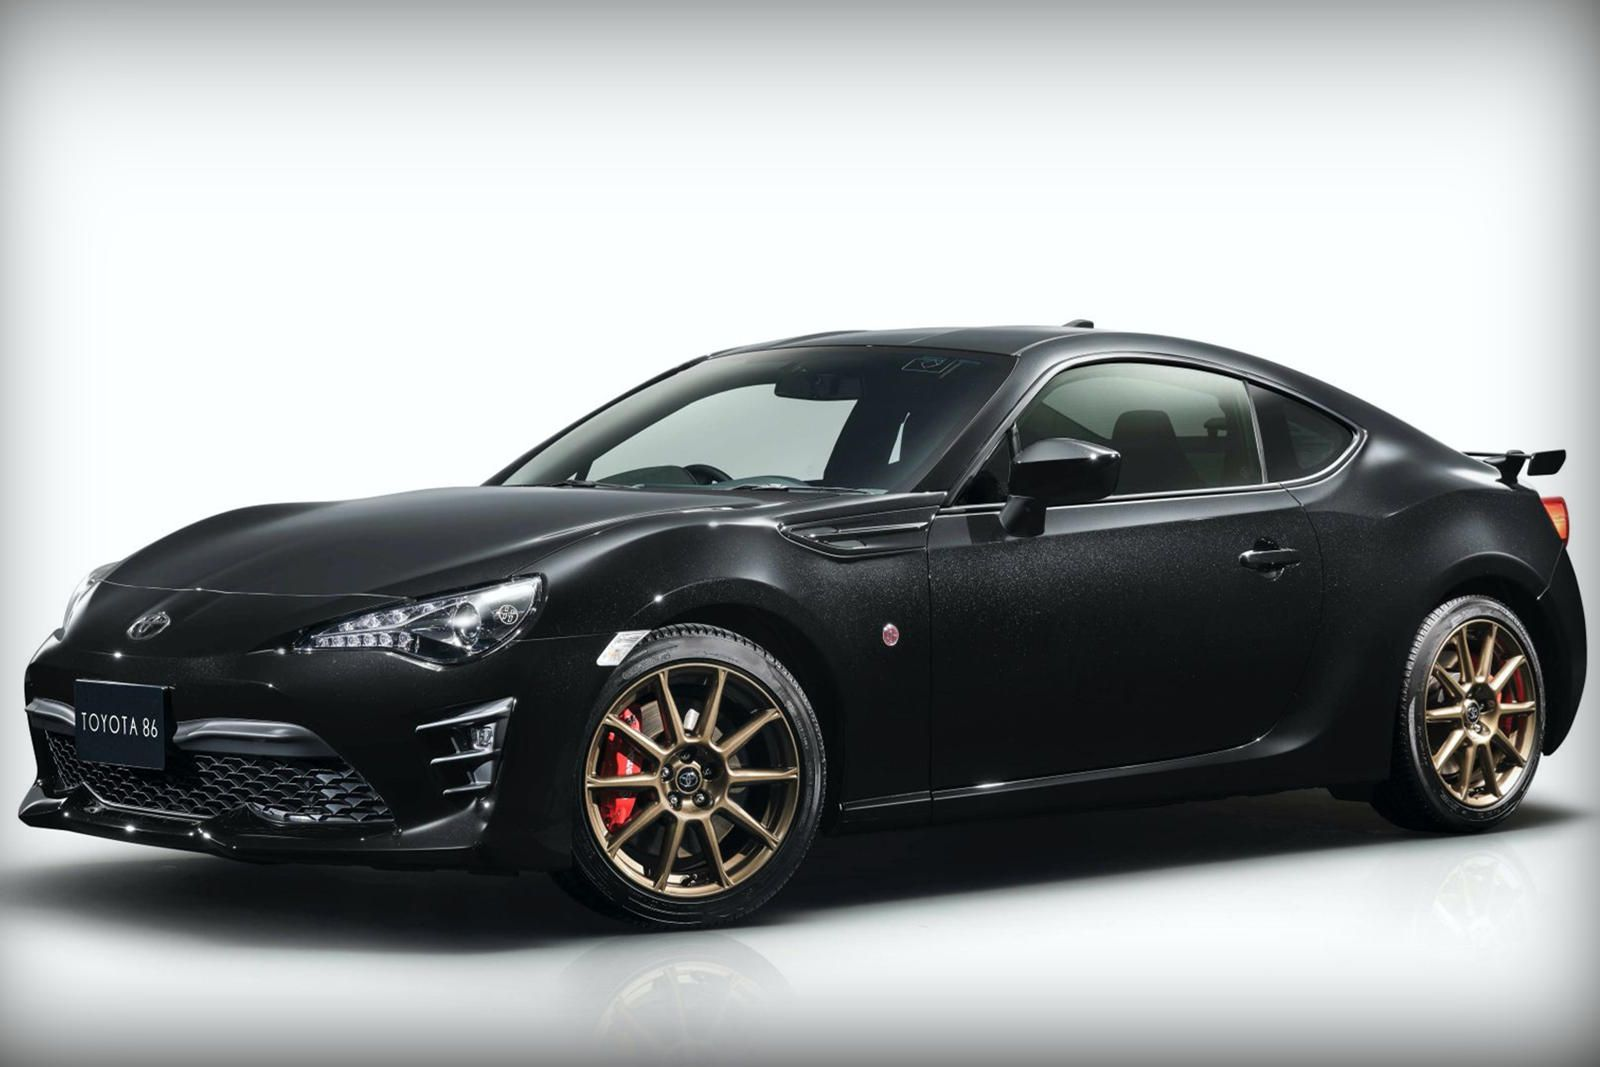 2021 Toyota 86 Black Limited Edition Top Speed In 2021 Toyota 86 Toyota Bronze Wheels